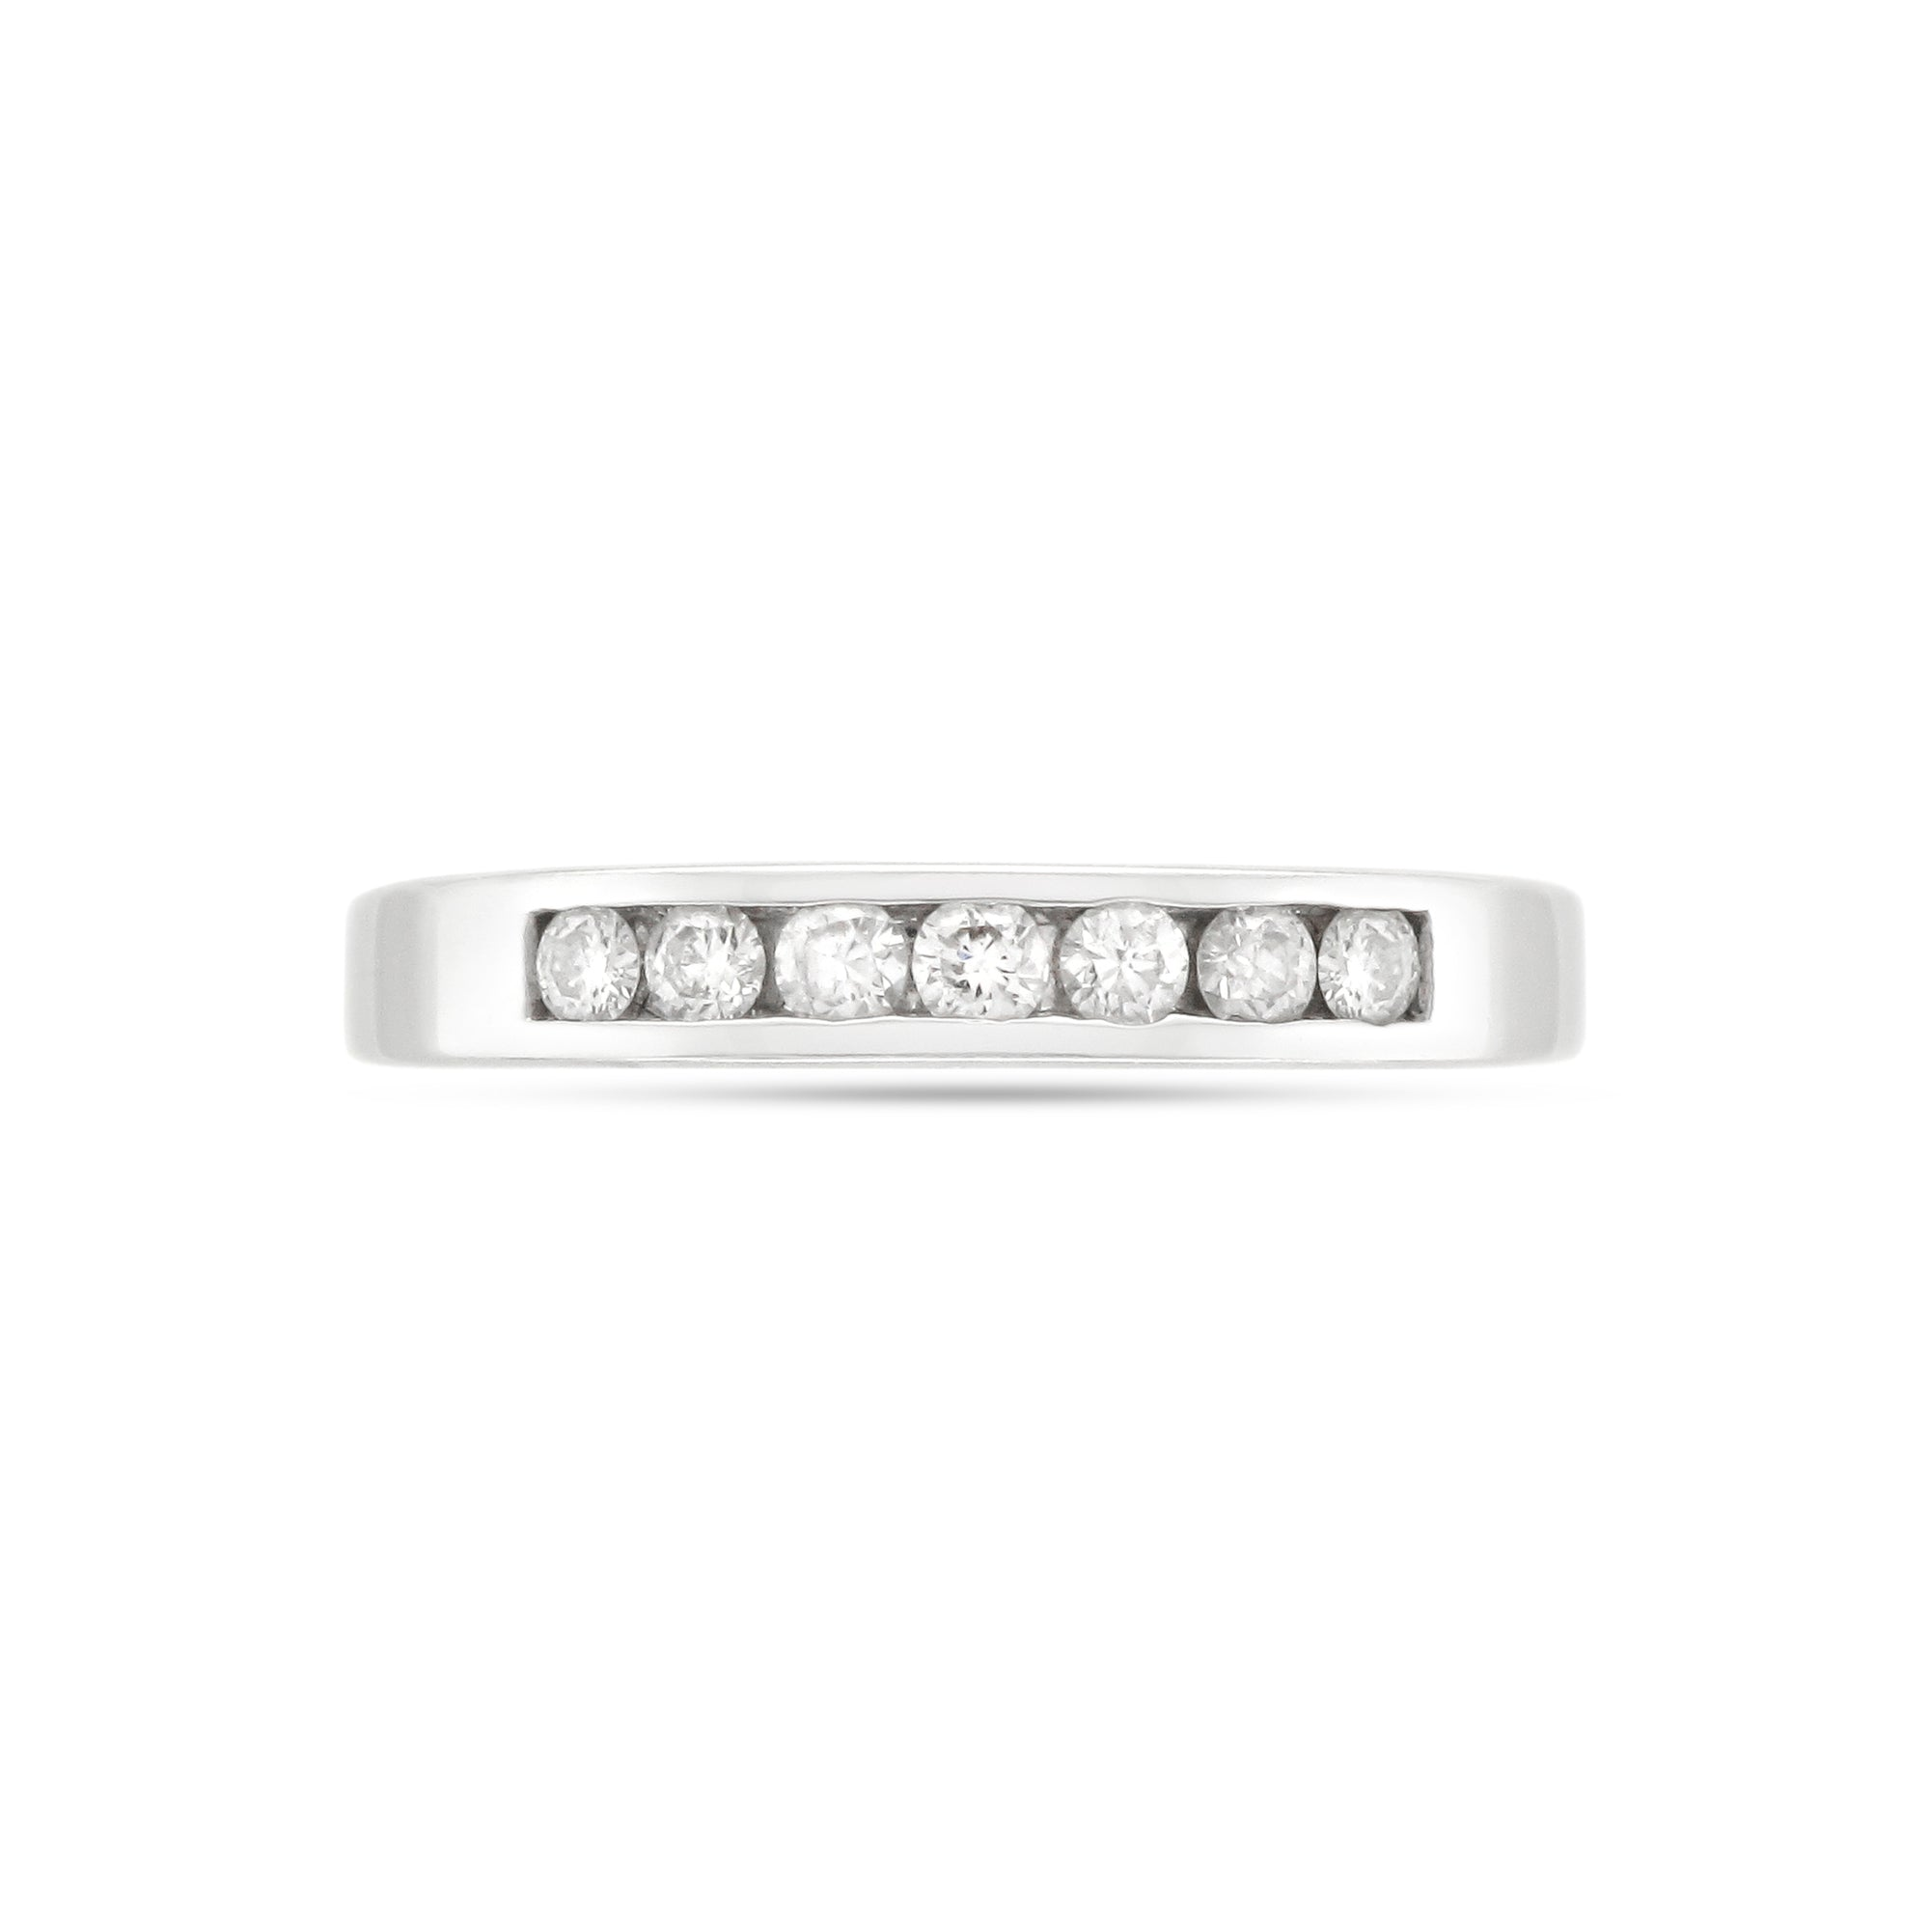 18ct White Gold Half Eternity Diamond Ring